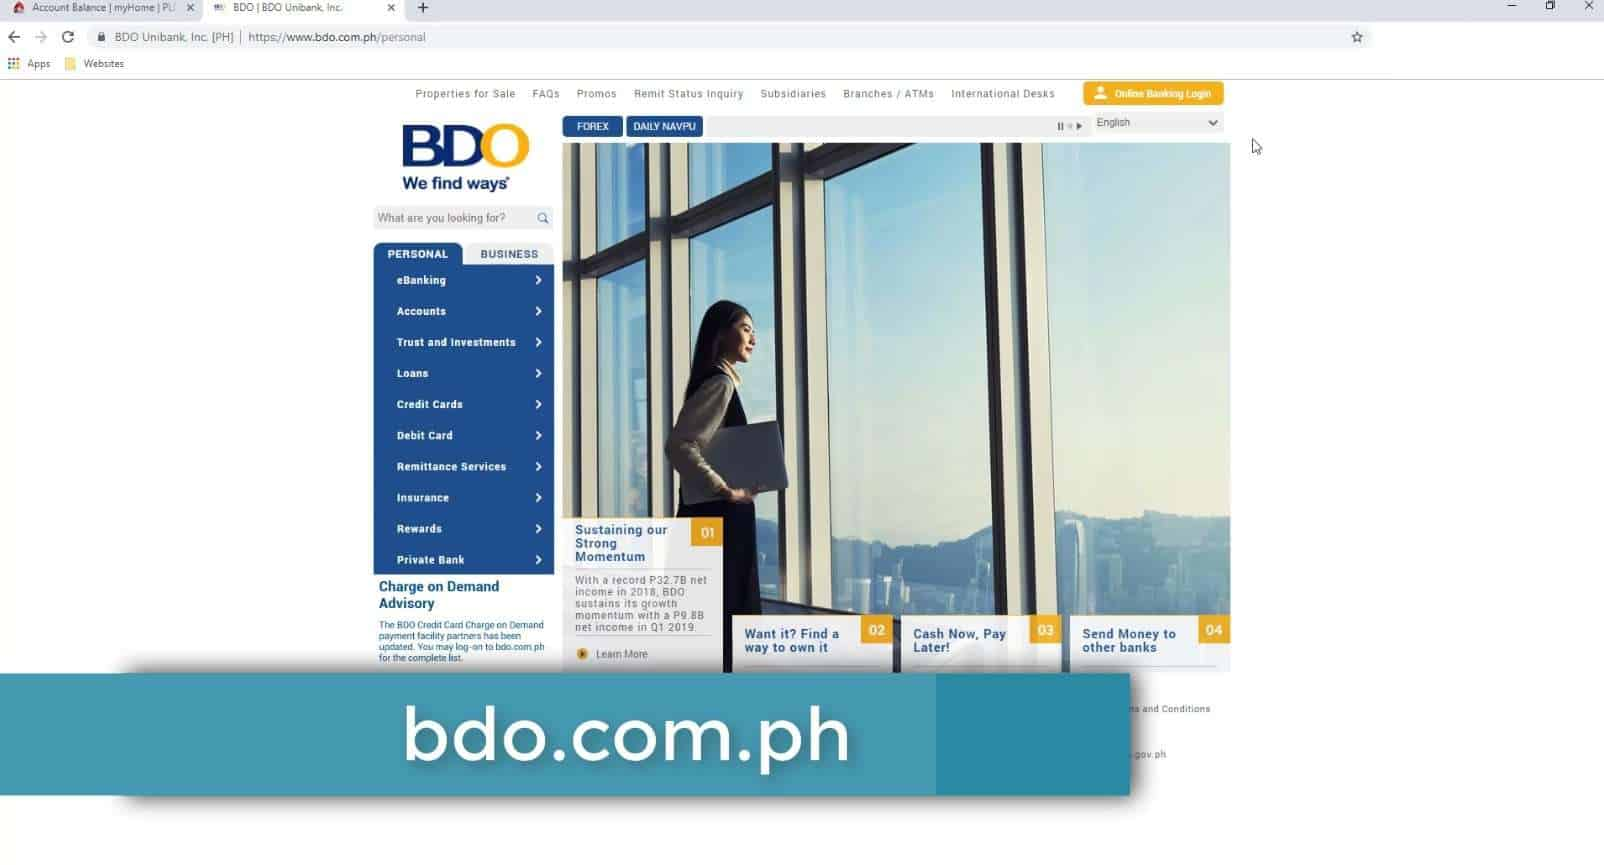 PLDT Online Payment BDO: How to Enroll and Pay PLDT Bills in